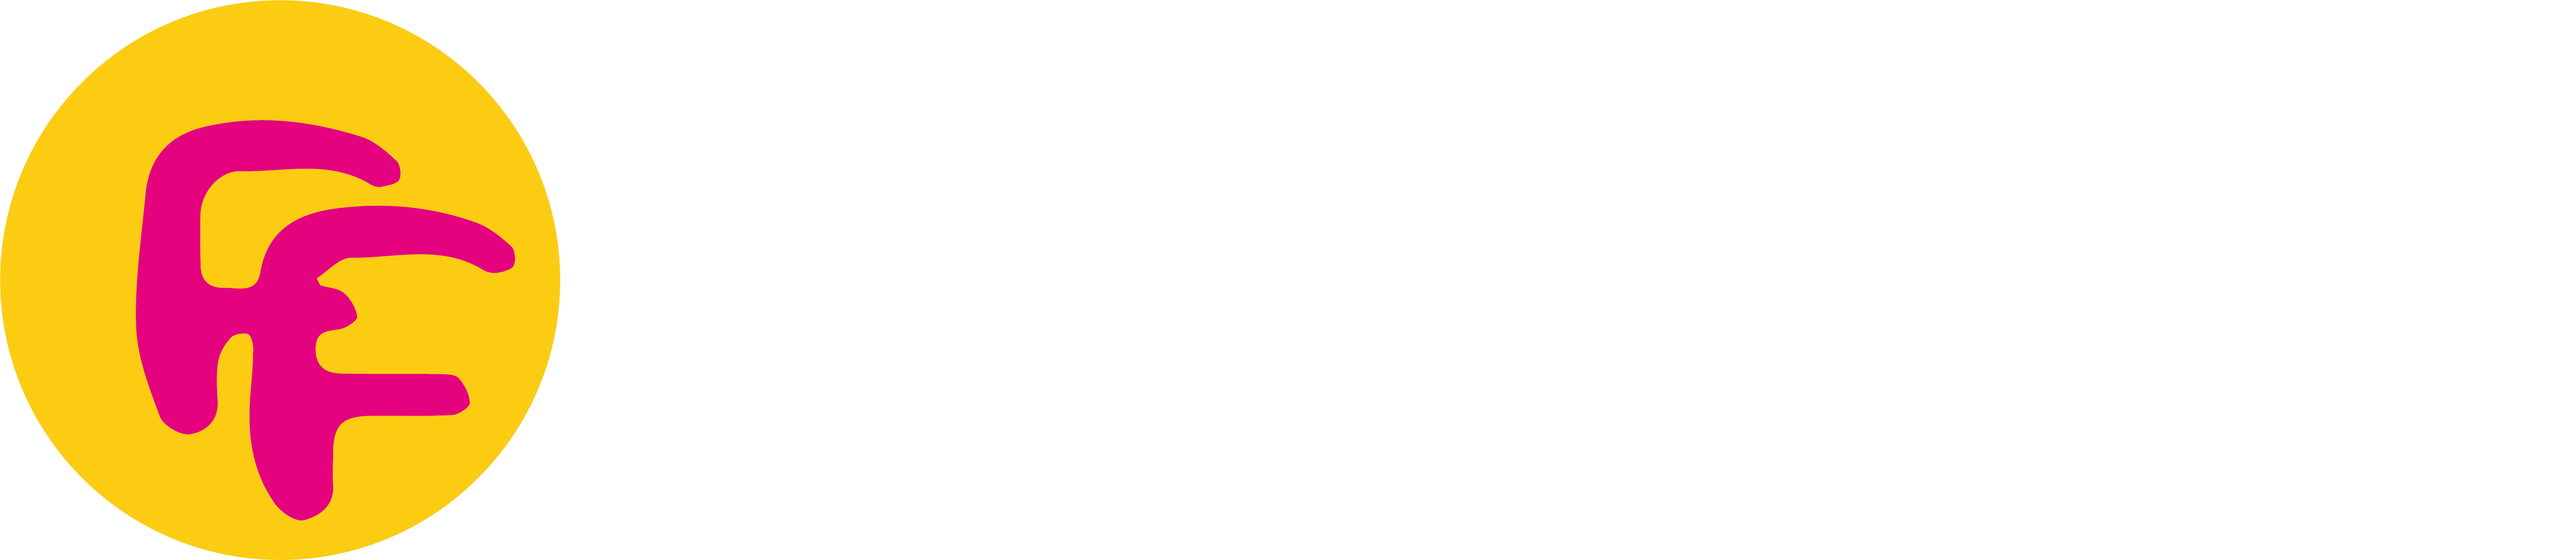 Forty Four Bar